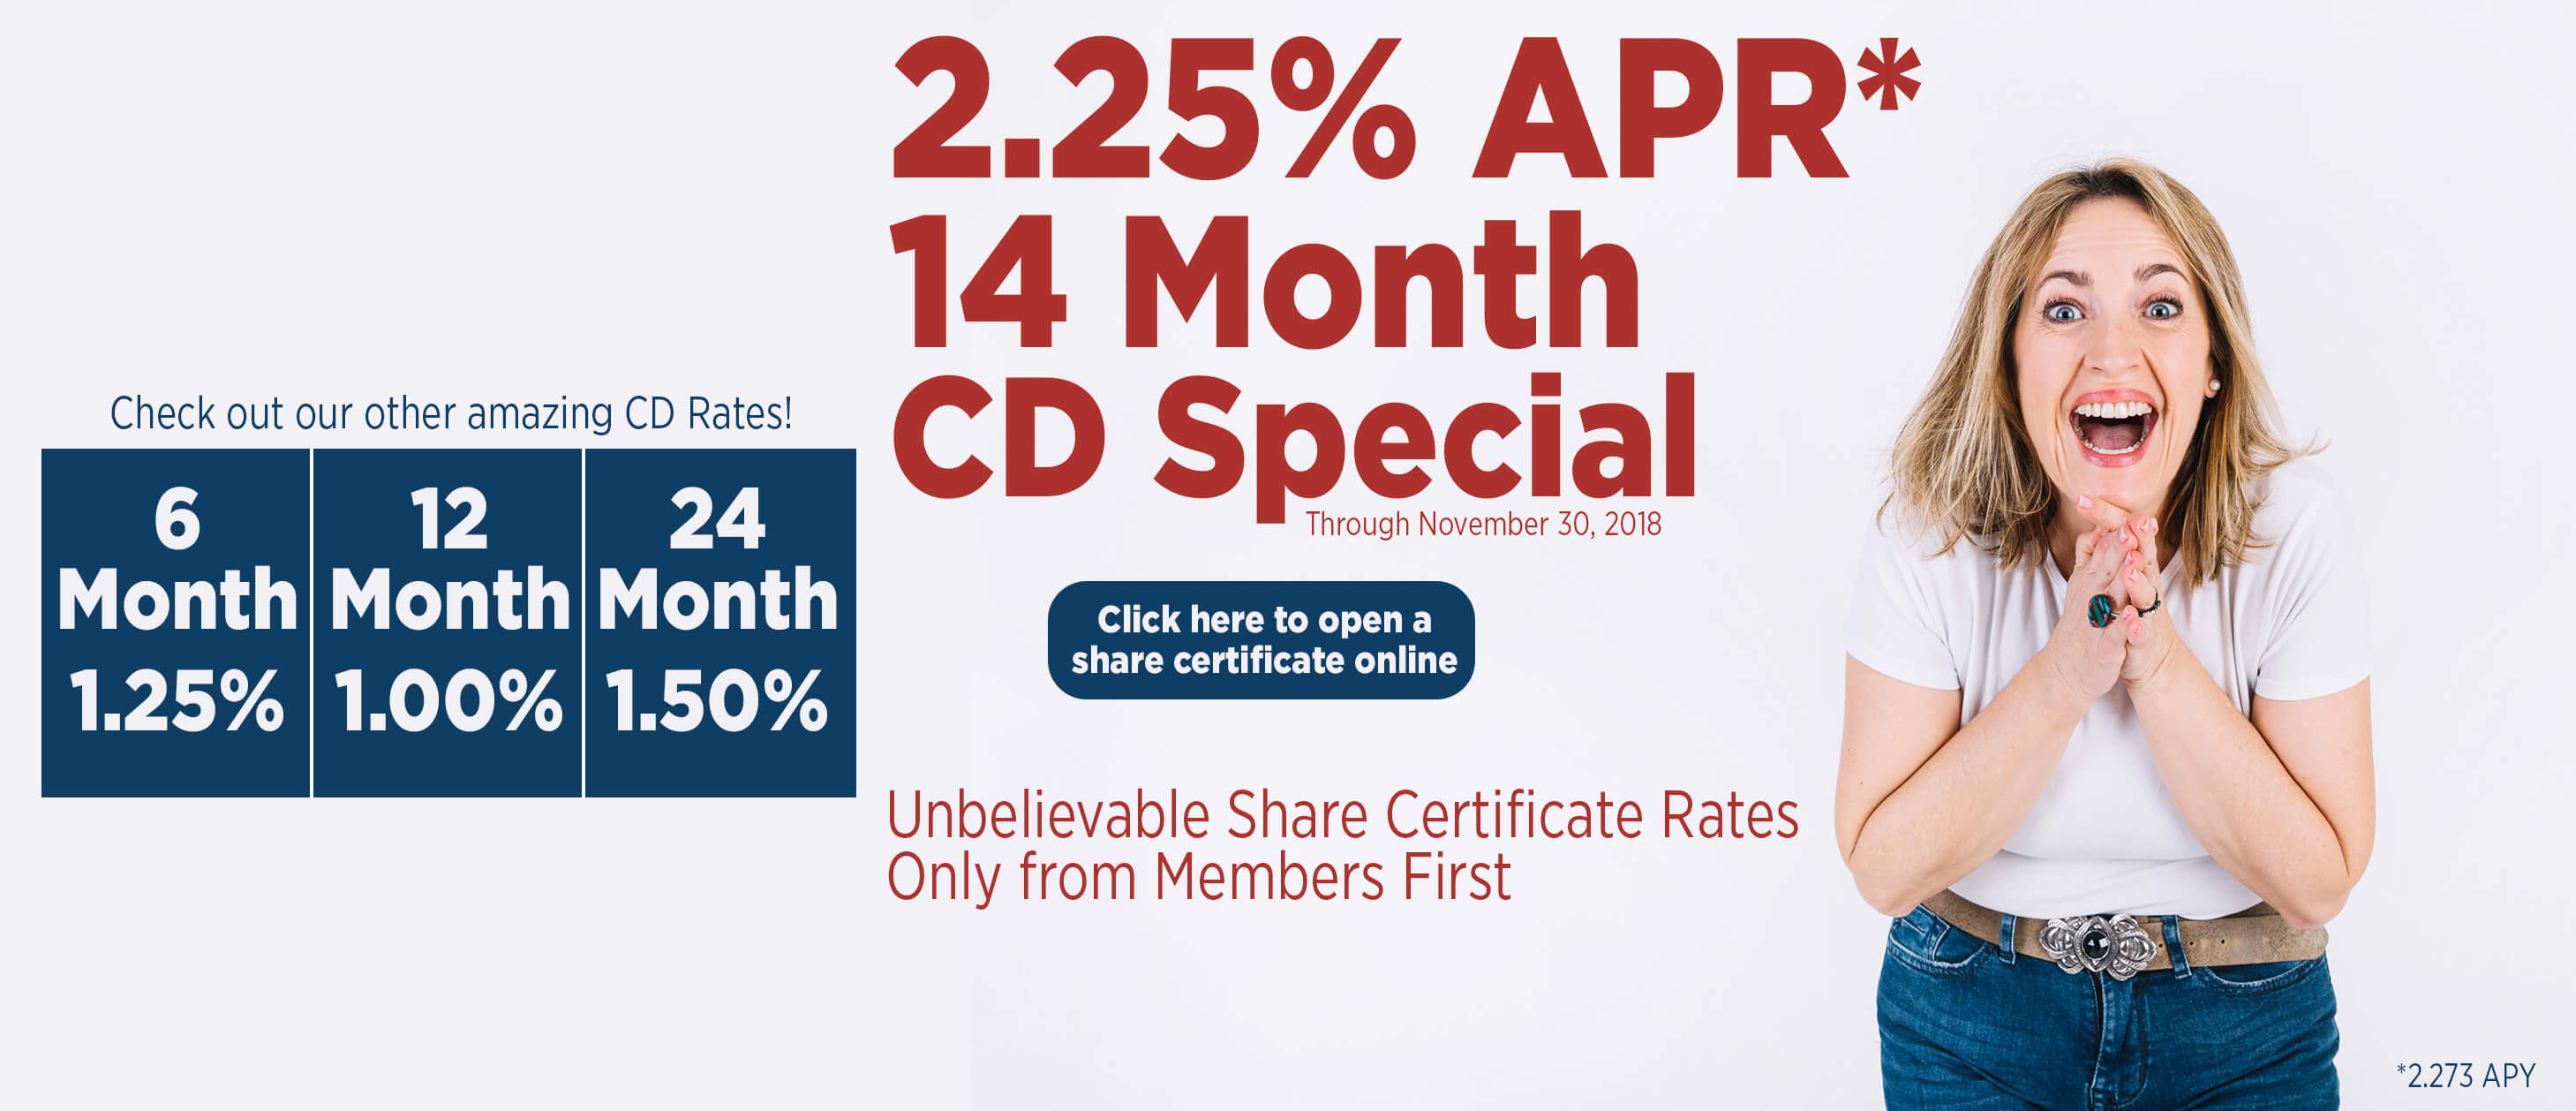 14 Month CD Special